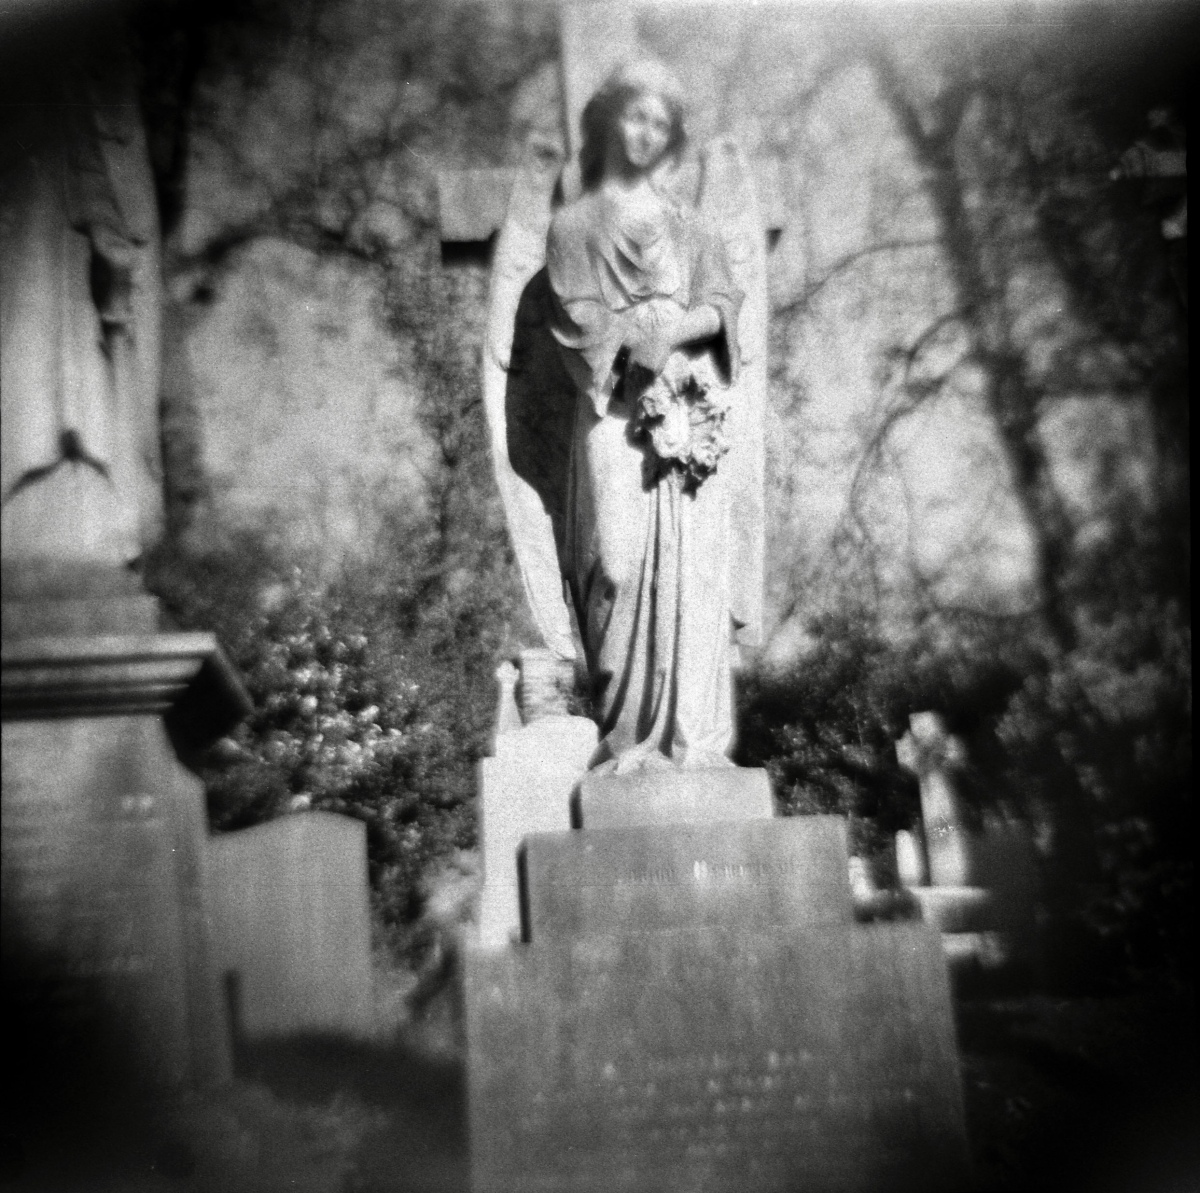 Highgate Cemetery Tour with the Diana F+ Camera